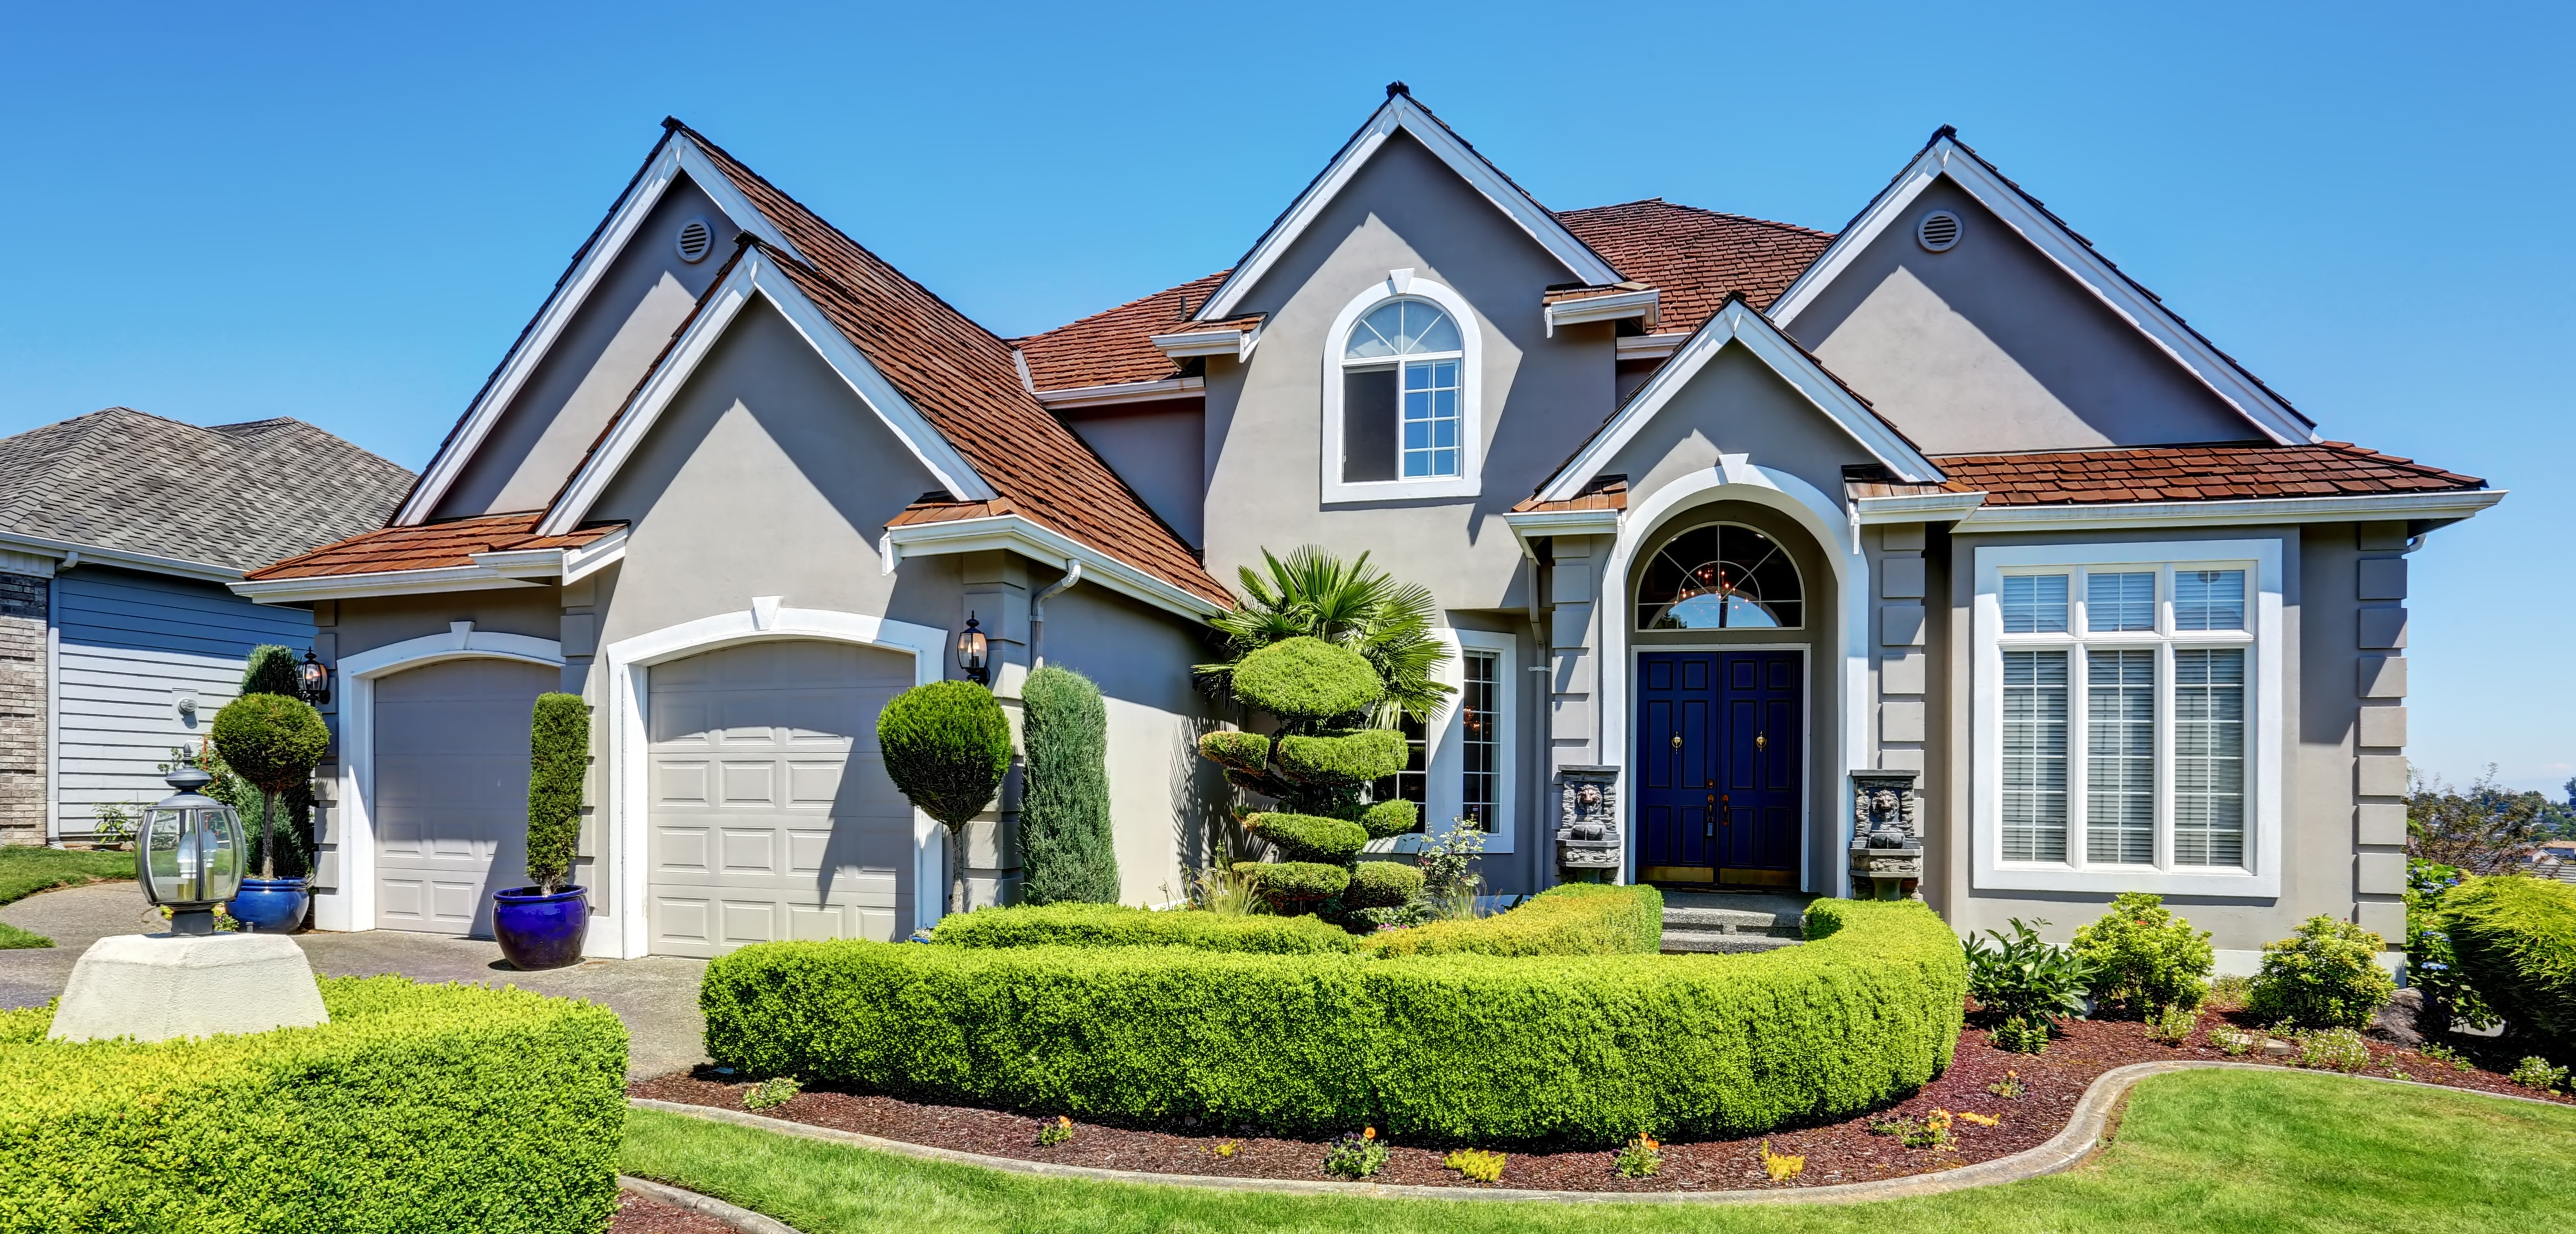 Exterior painting contractors new orleans for Exterior house painting companies